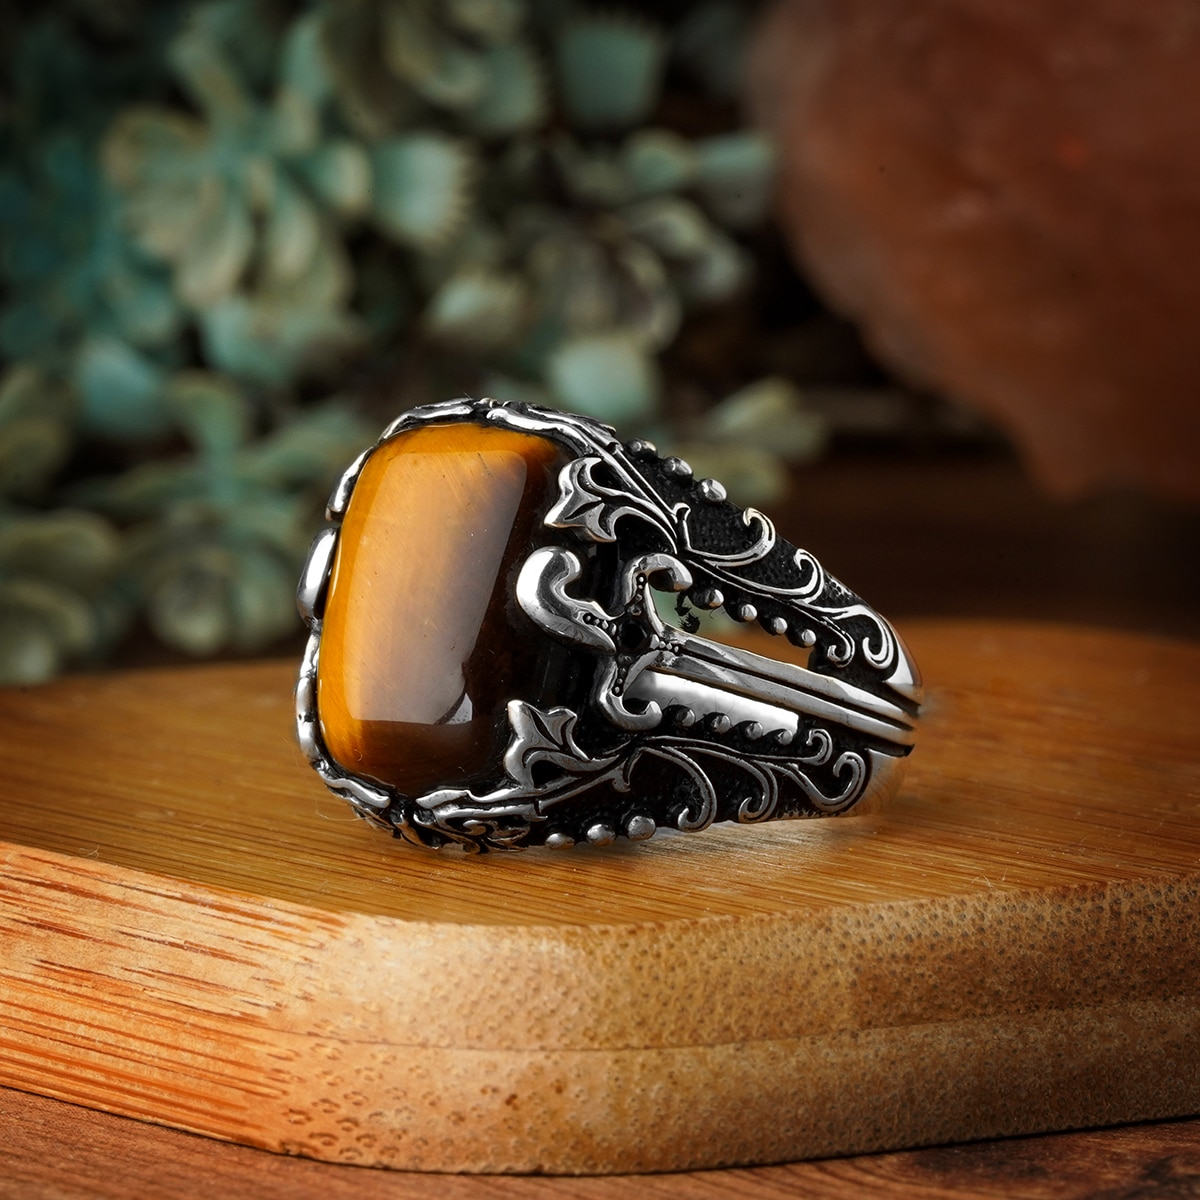 Real 925 Sterling Silver Islamic Men Ring with Men Ring with Firuz Stone Ring Double Swords Rings for Man Turkish Religious